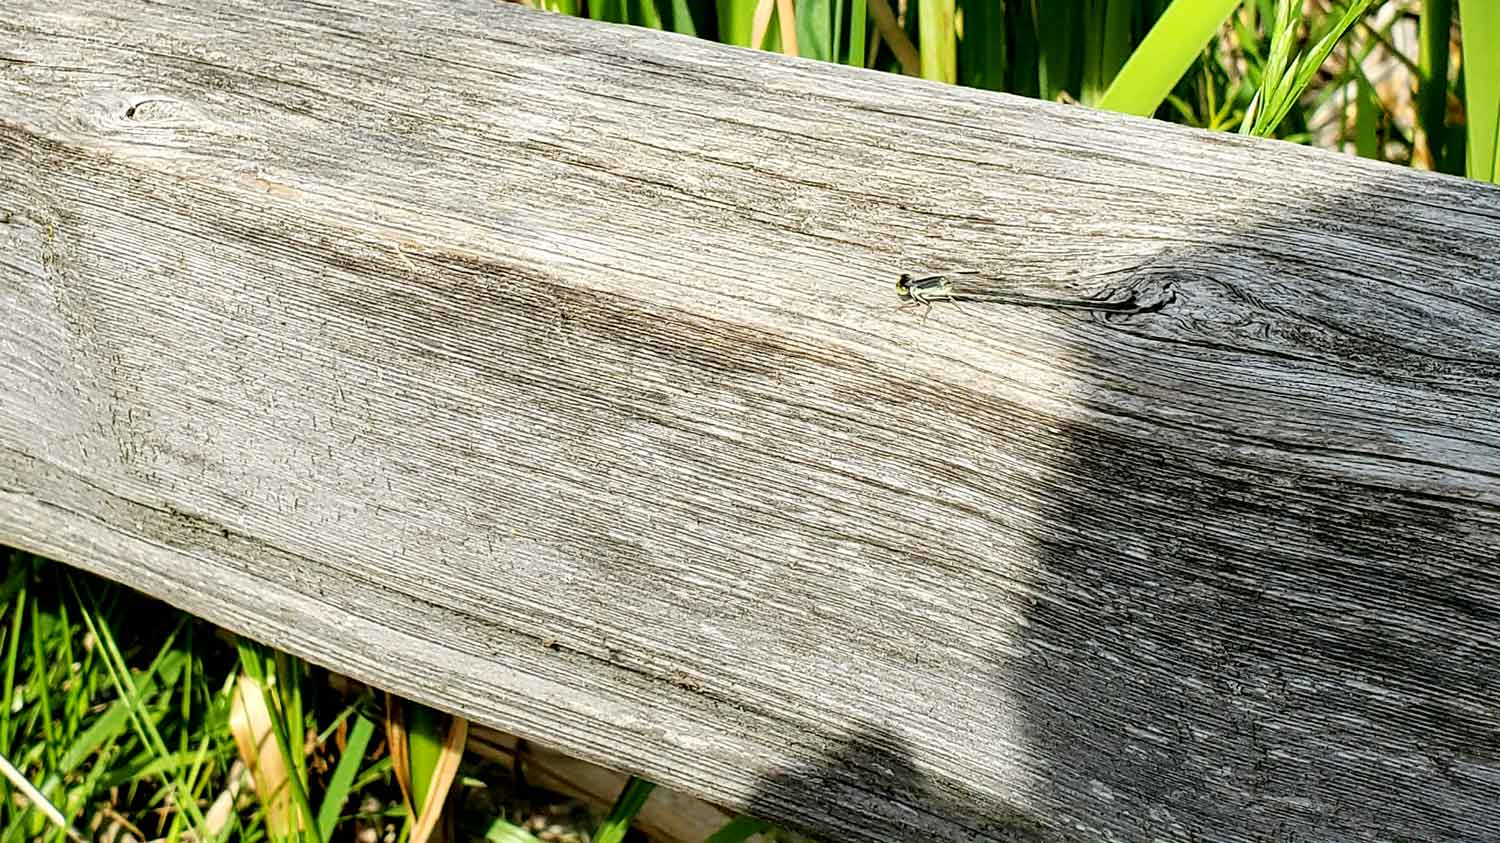 Tiny dragonfly on wooden fence rail at Veteran Acres Park.